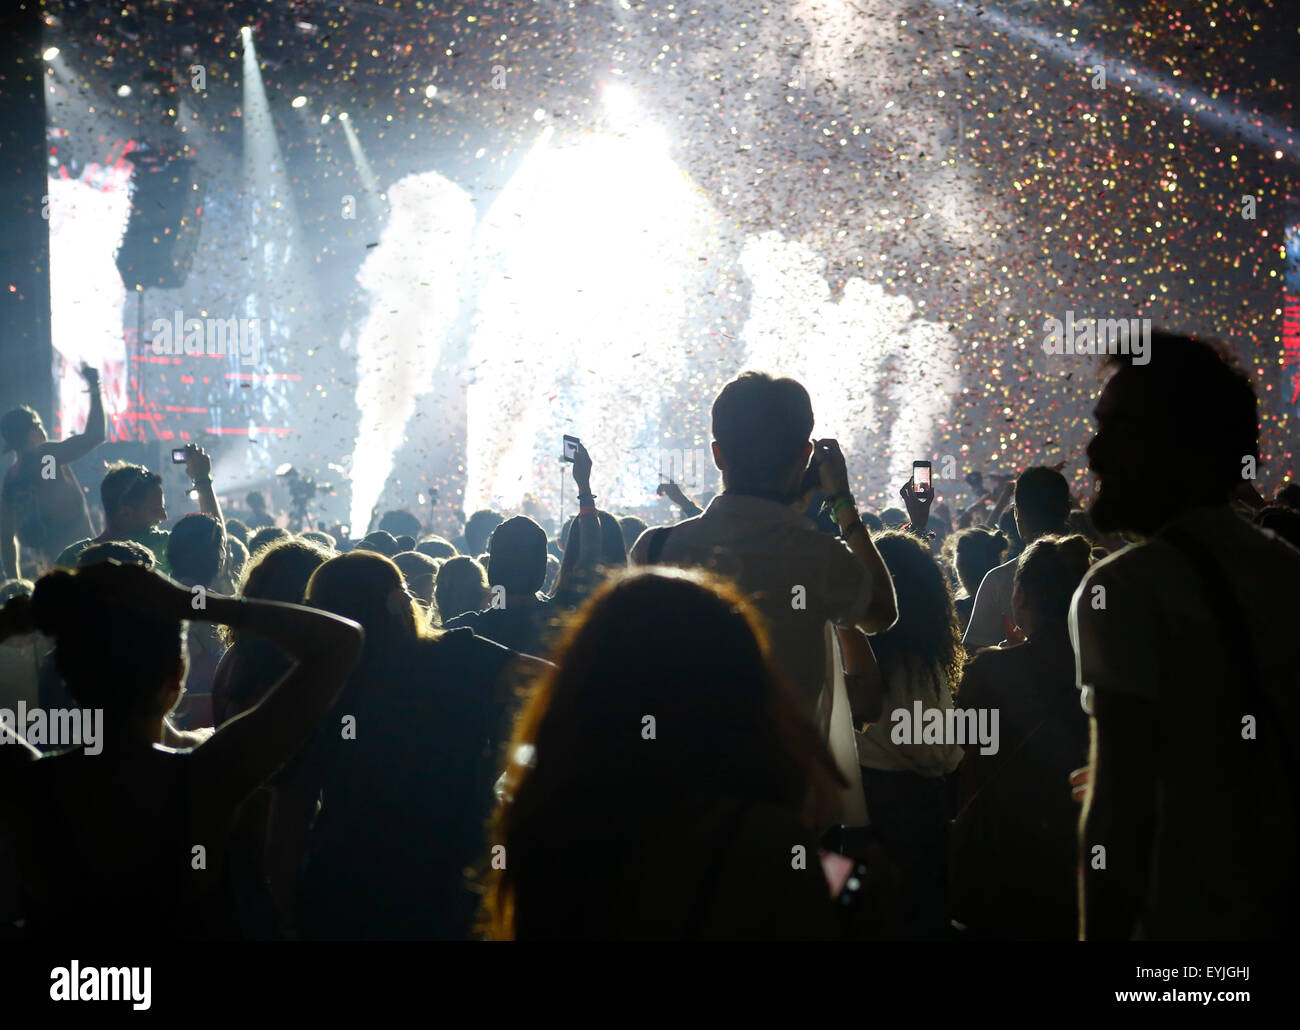 Crowded live performance event at Sonar music festival in Barcelona - Stock Image